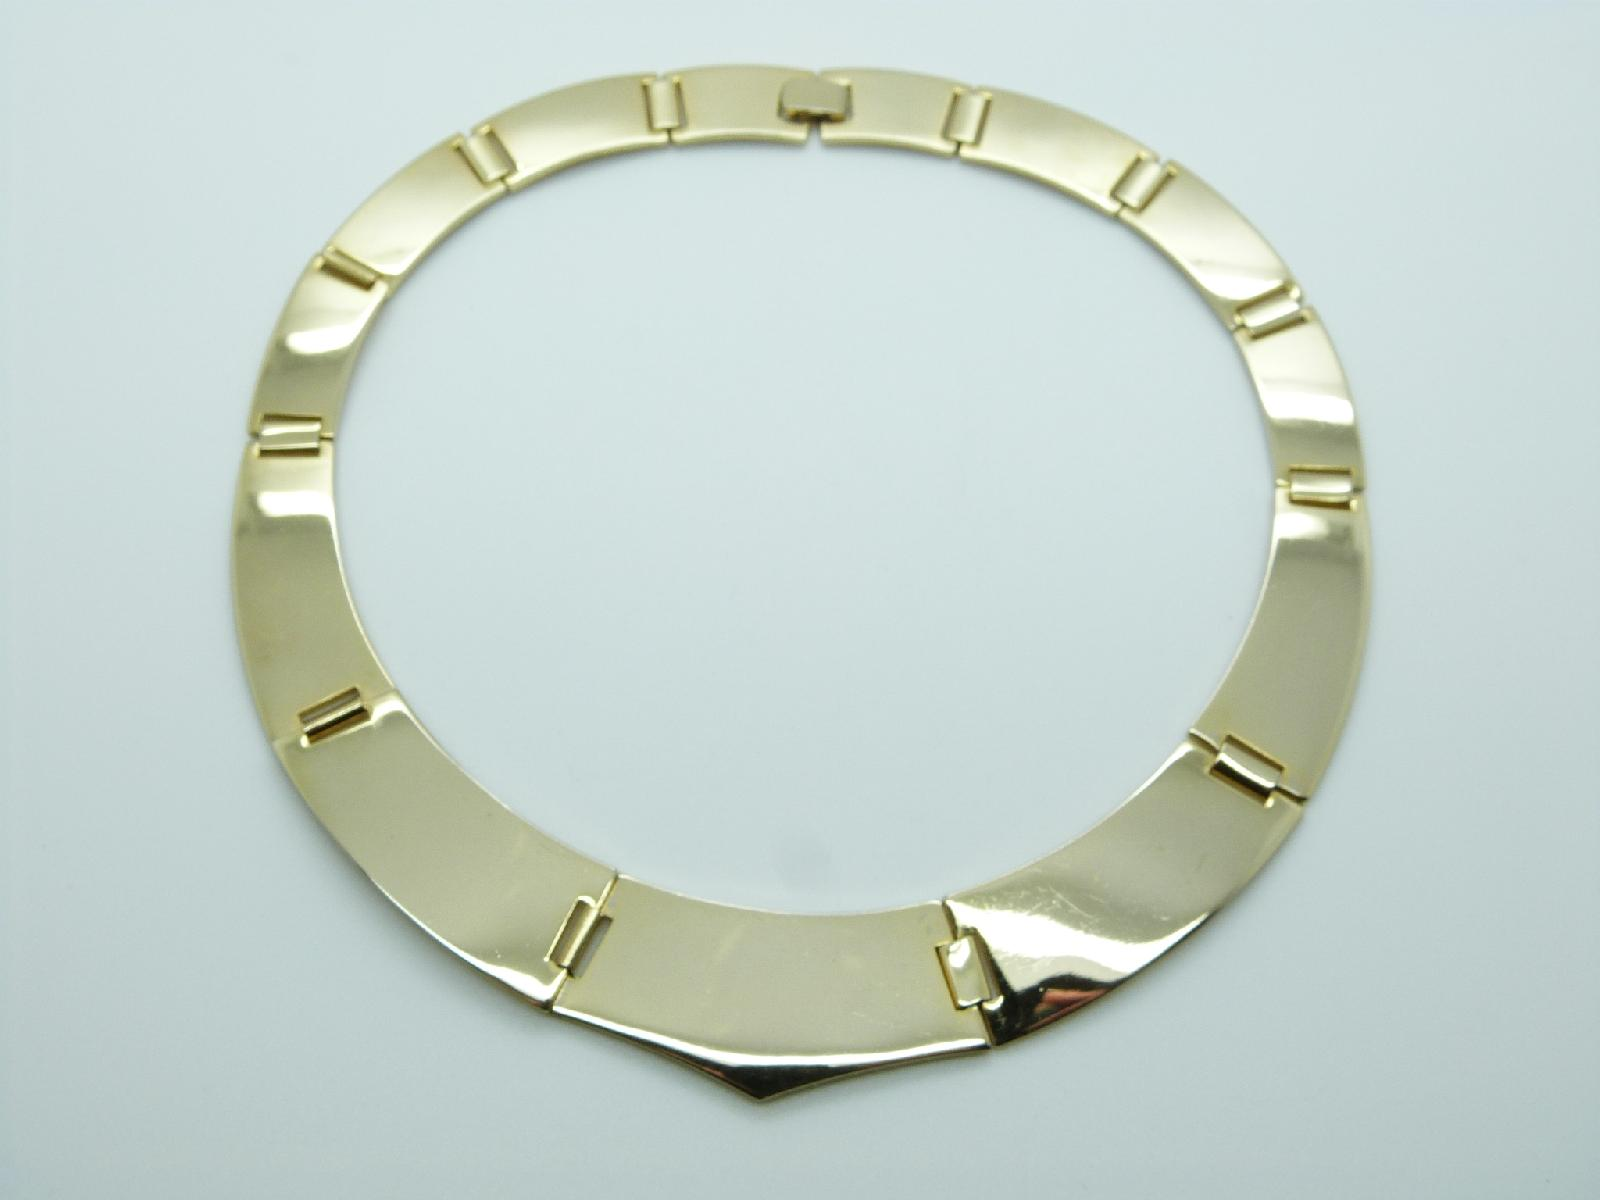 Vintage 80s Highly Polished Goldtone Collar Statement Necklace Amazing!